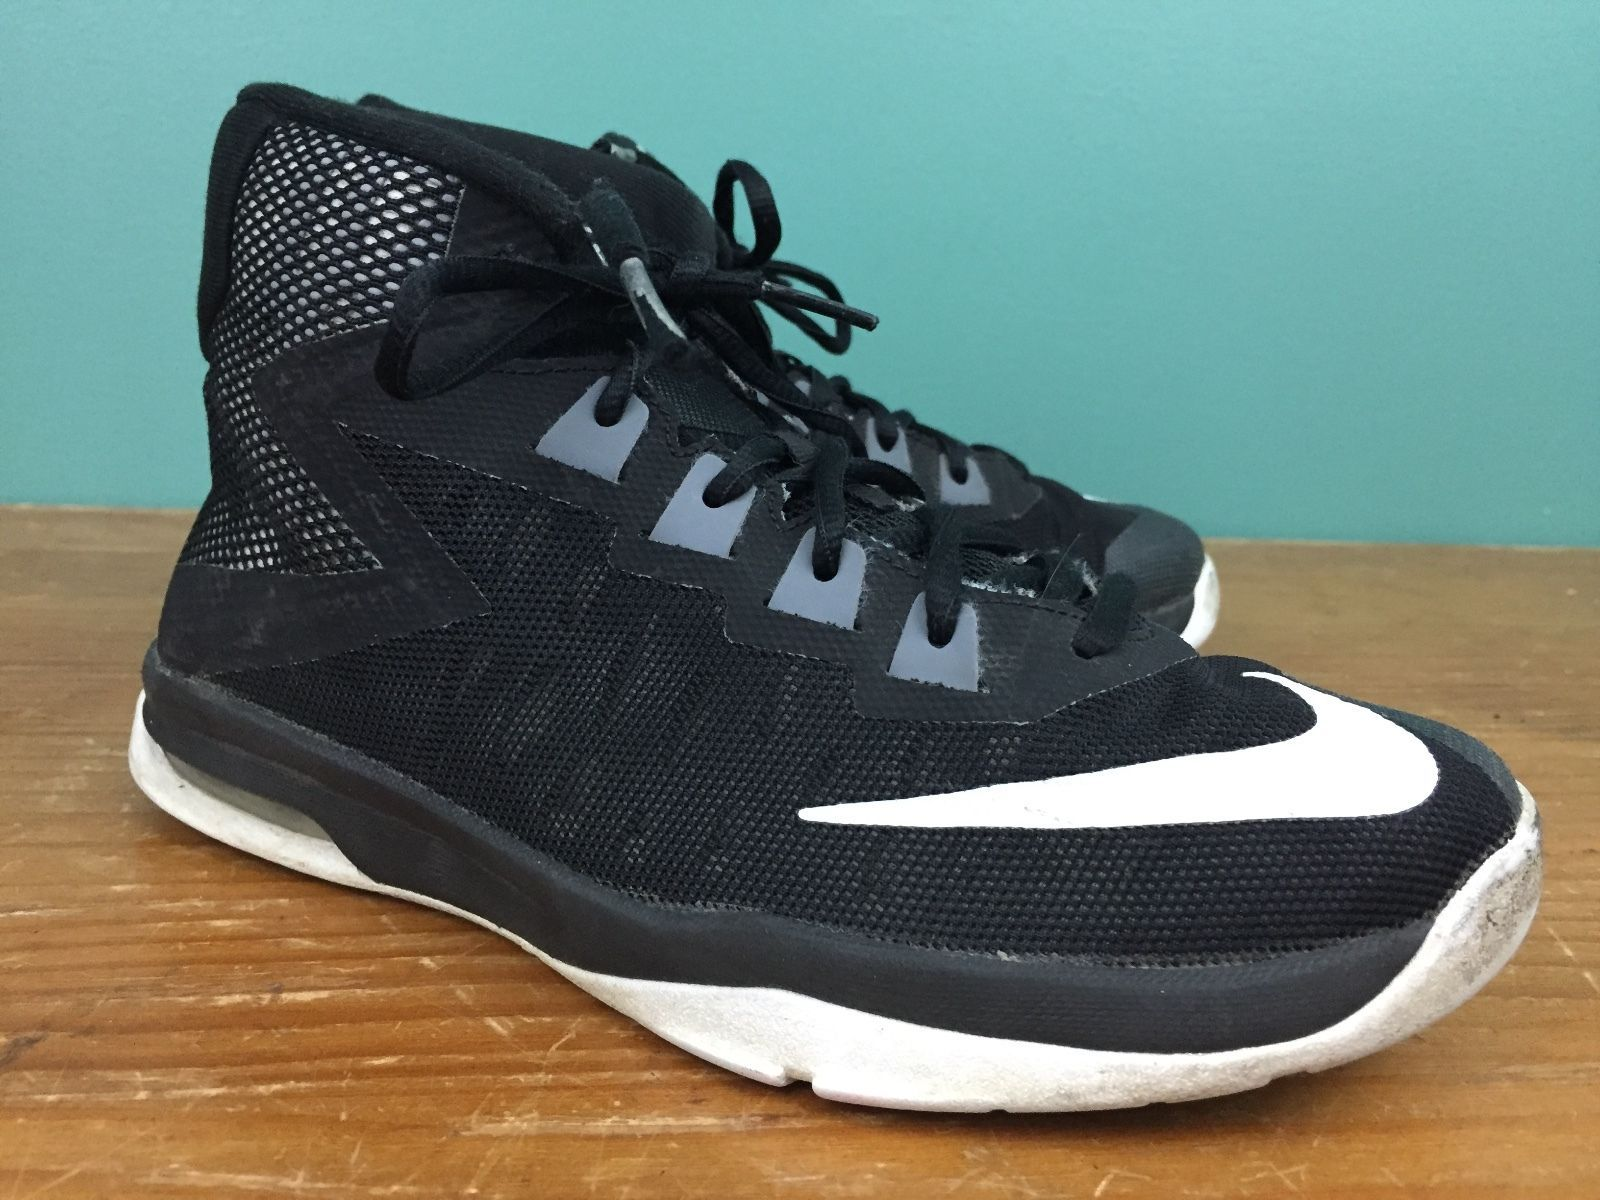 30c3e96028d9 Nike Air Devosion Youth Basketball Shoes - and 50 similar items. S l1600